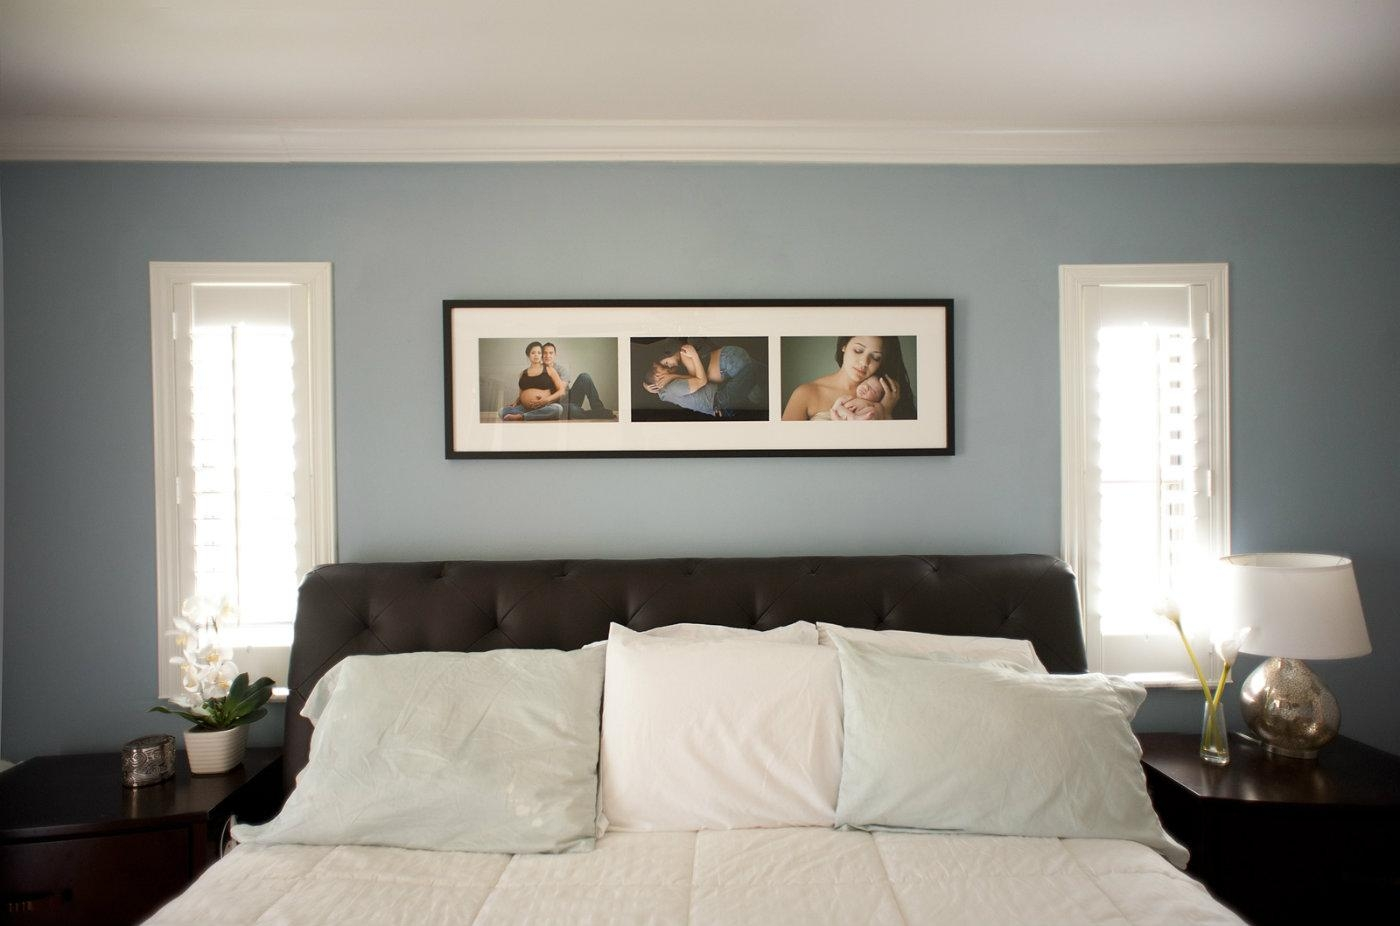 Bedroom Framed Wall Art Images